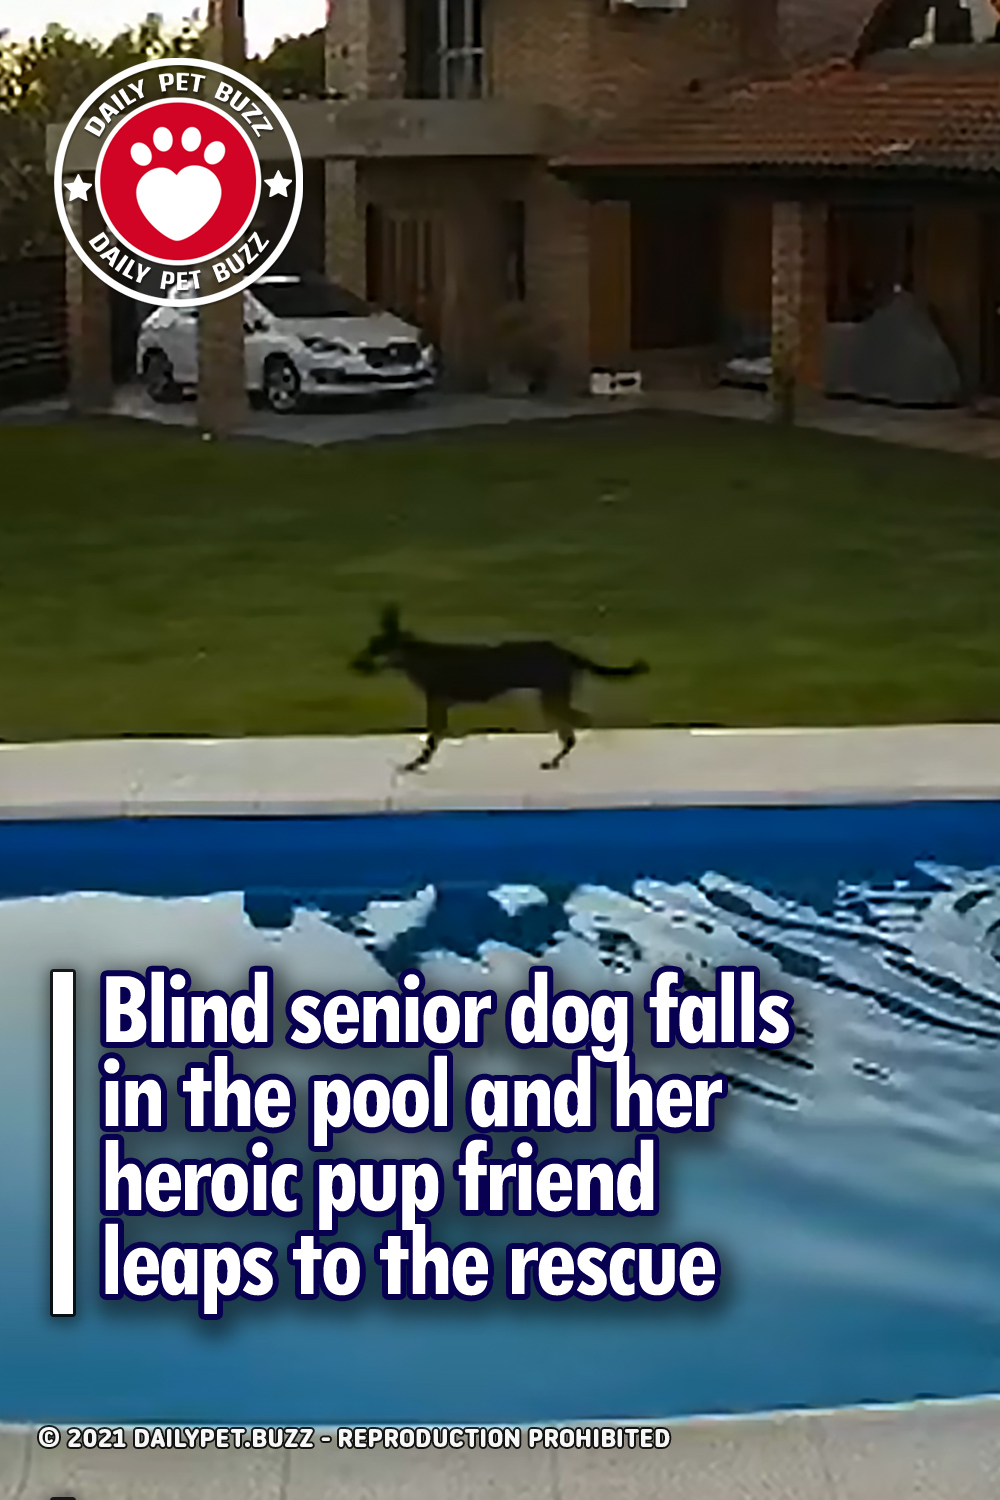 Blind senior dog falls in the pool and her heroic pup friend leaps to the rescue